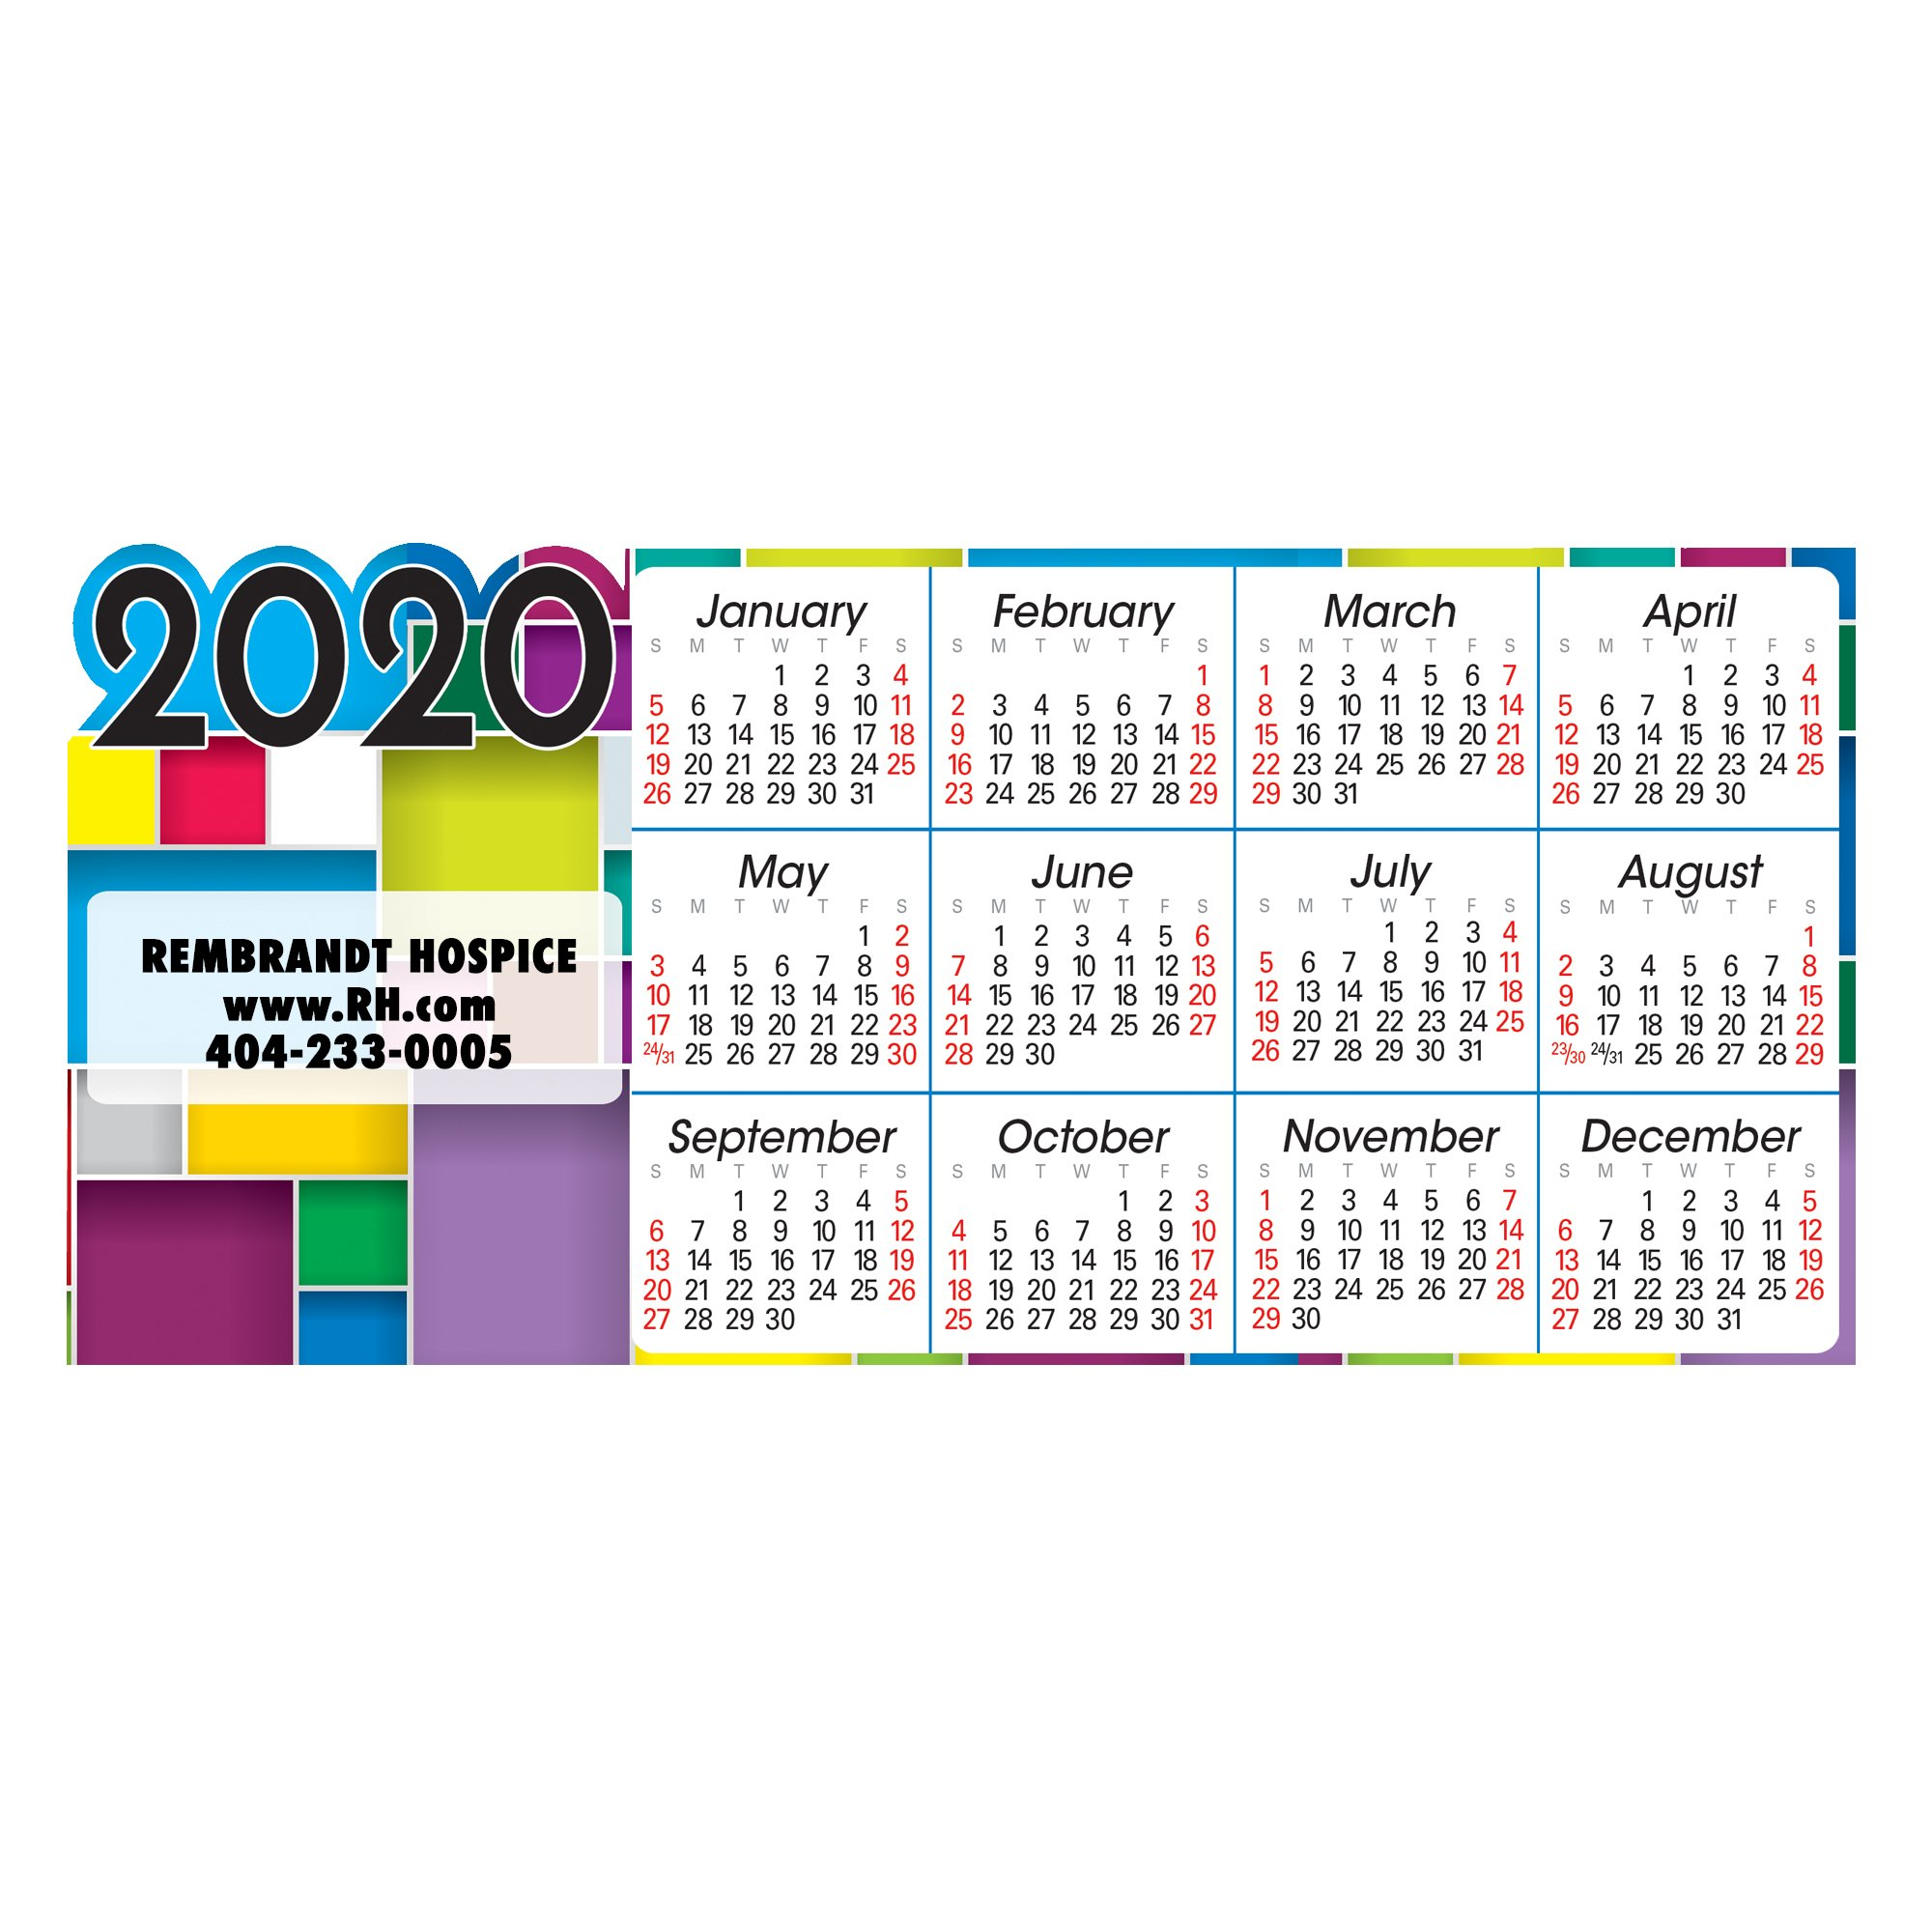 Our range of calendars includes various types of wall calendars and desk calendars all beautifully printed with a high quality finish to compliment your logo and branding. Don't forget to check out our extensive range of personalised diaries.